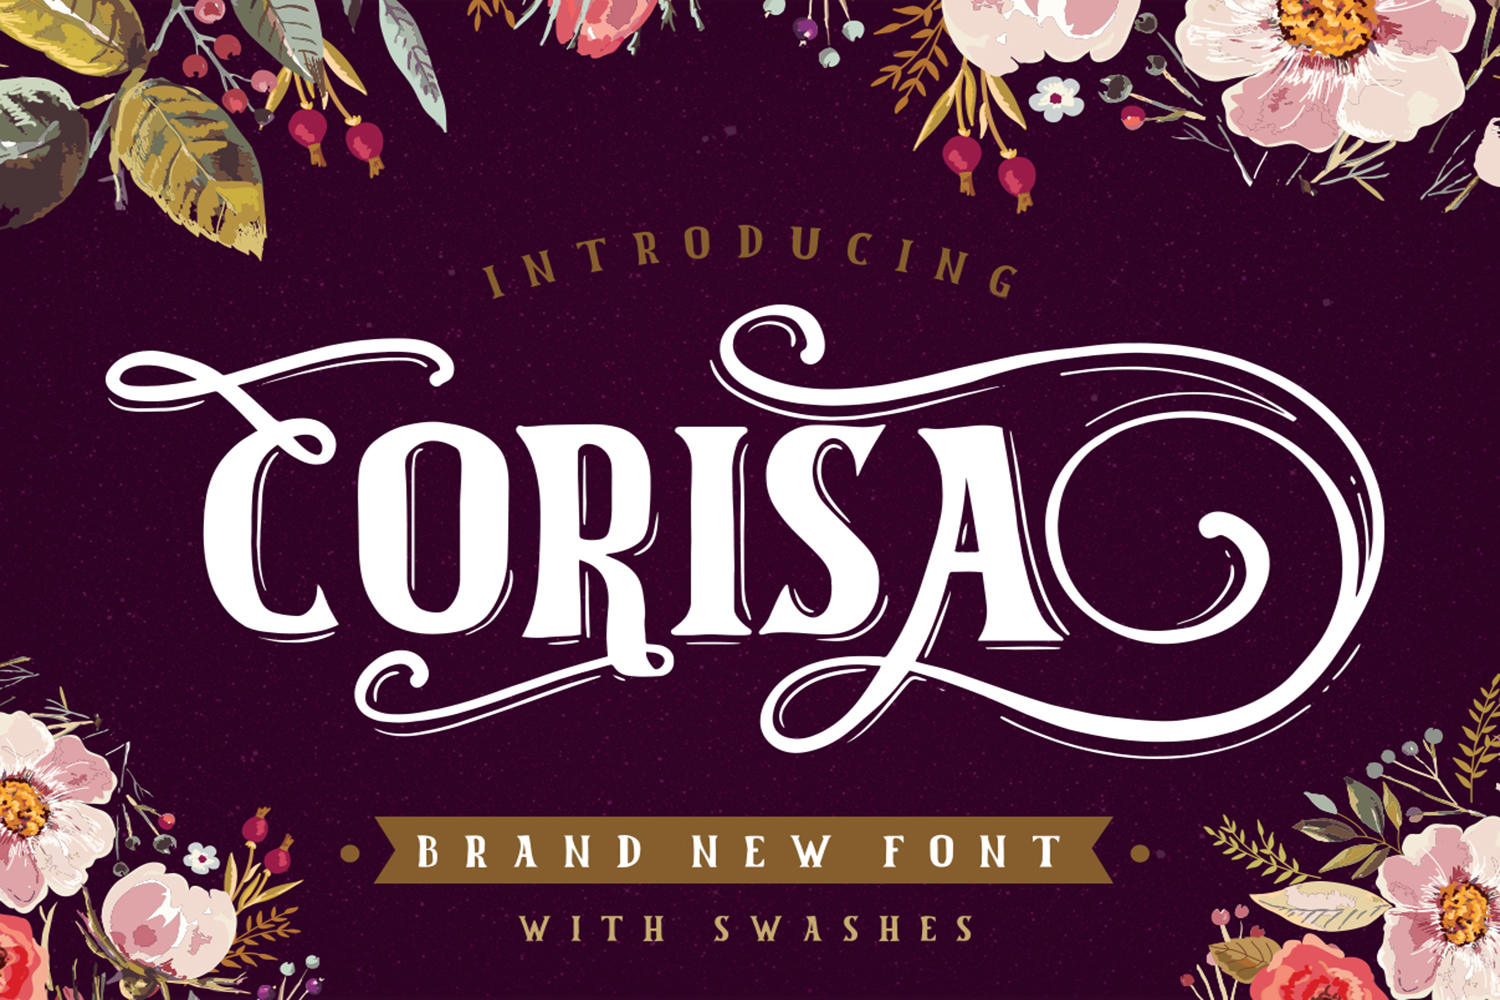 Corisa display font with swashes example image 1